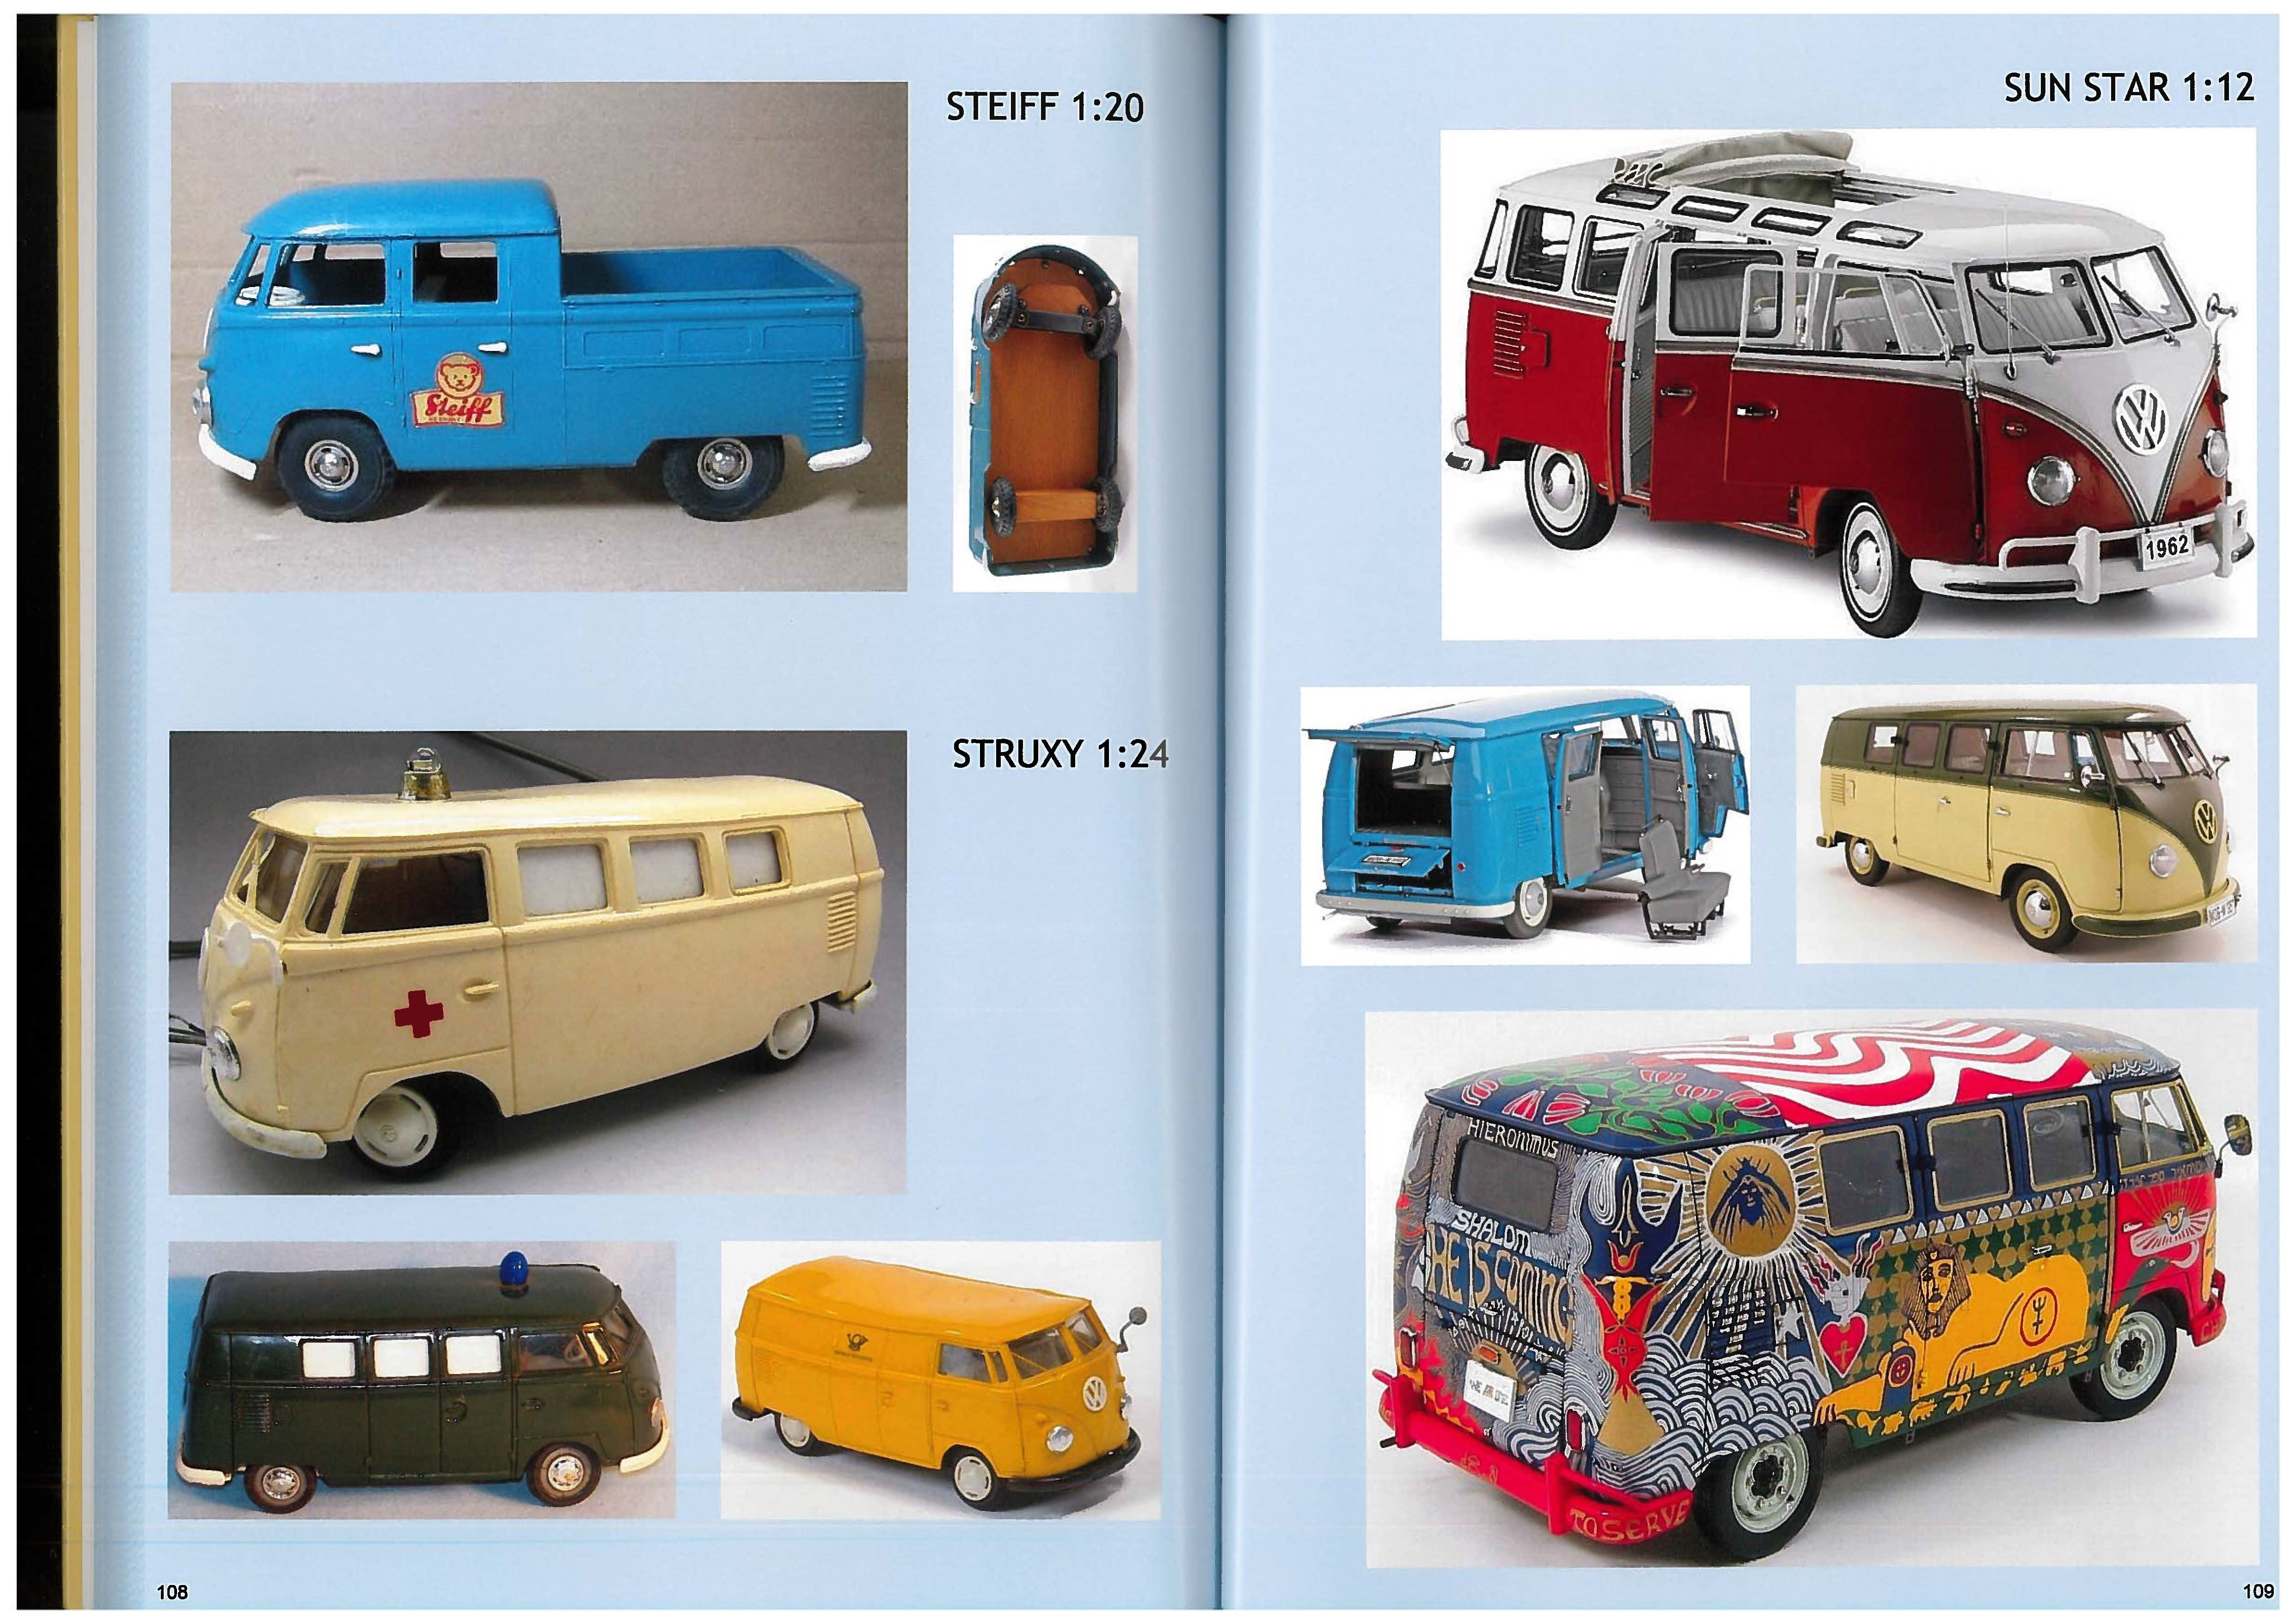 vw bus modelle katalog allerlei vwbusforum ch. Black Bedroom Furniture Sets. Home Design Ideas